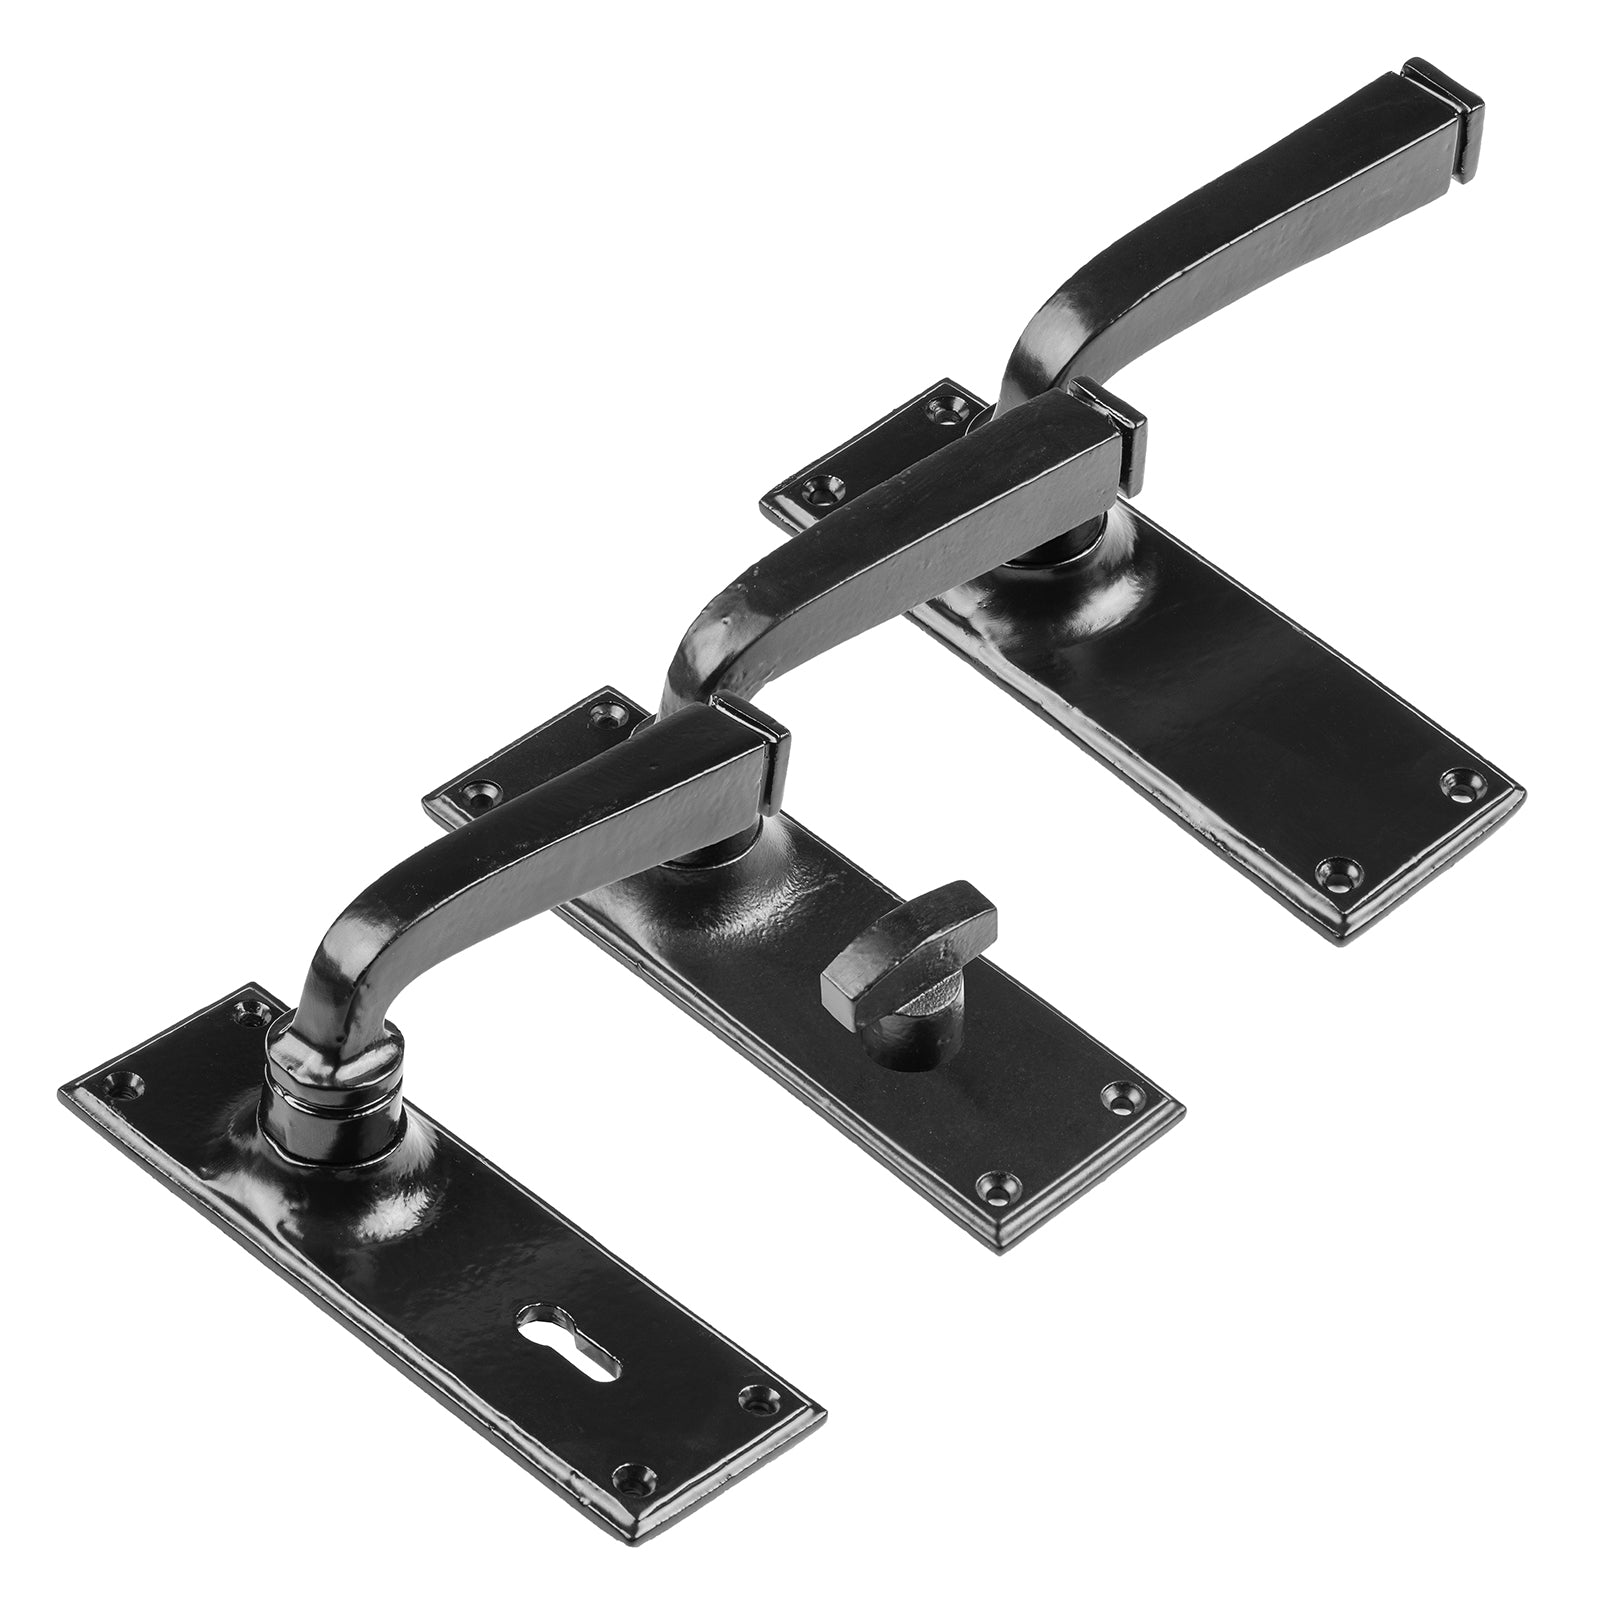 black lever door handles, Avon Lever Handles Black lock latch bathroom